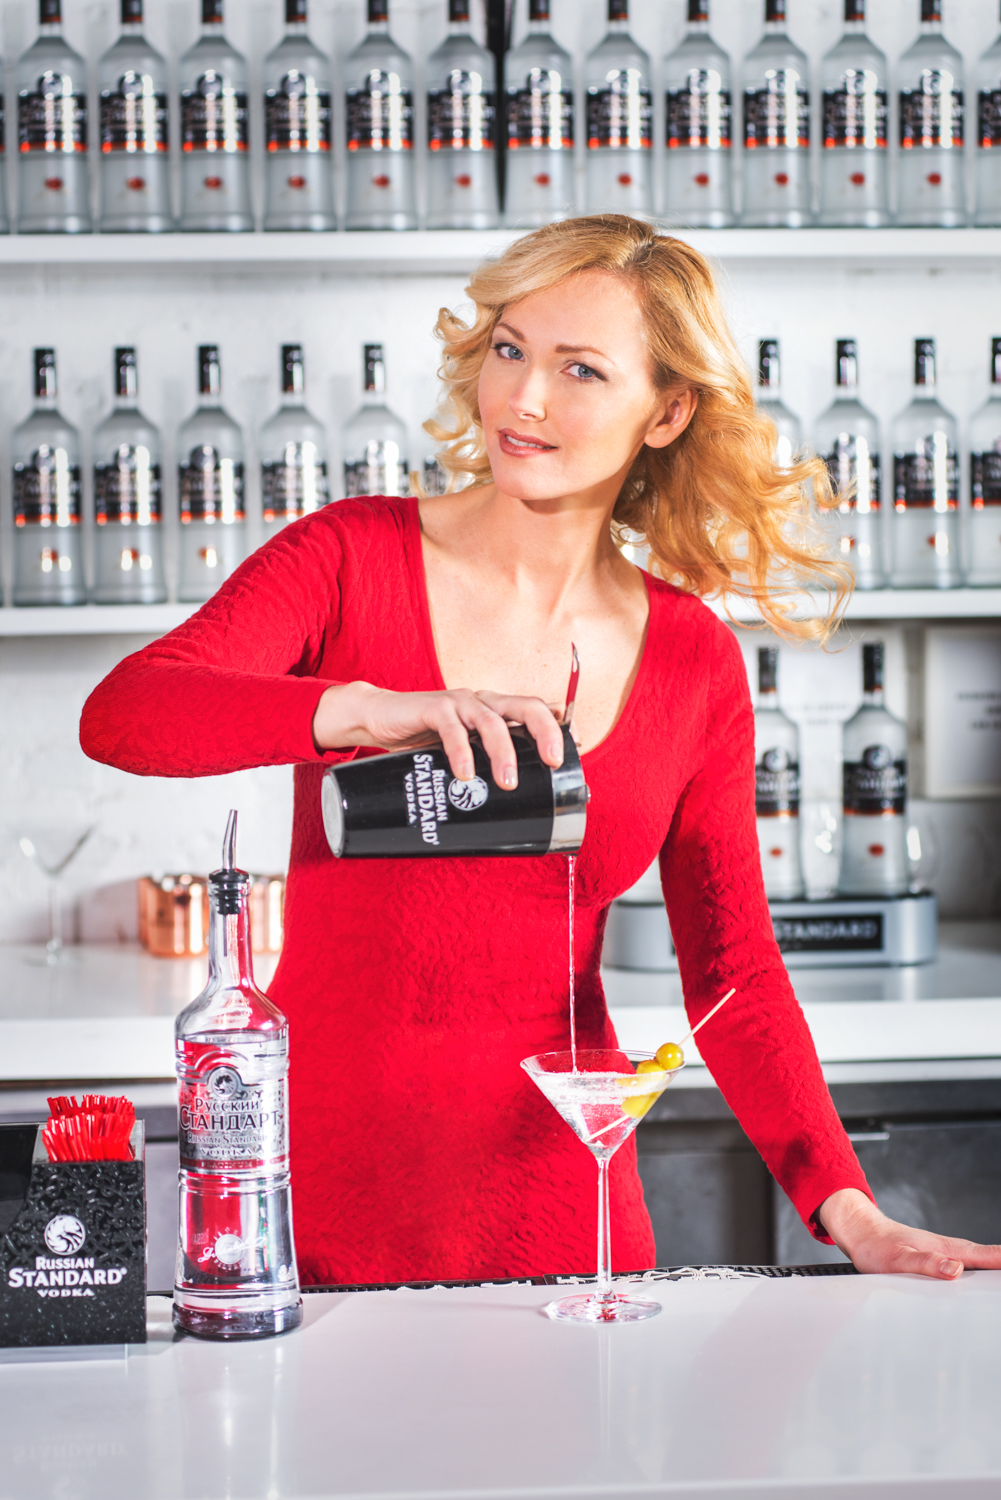 Russian Standard Vodka Instagram Photography